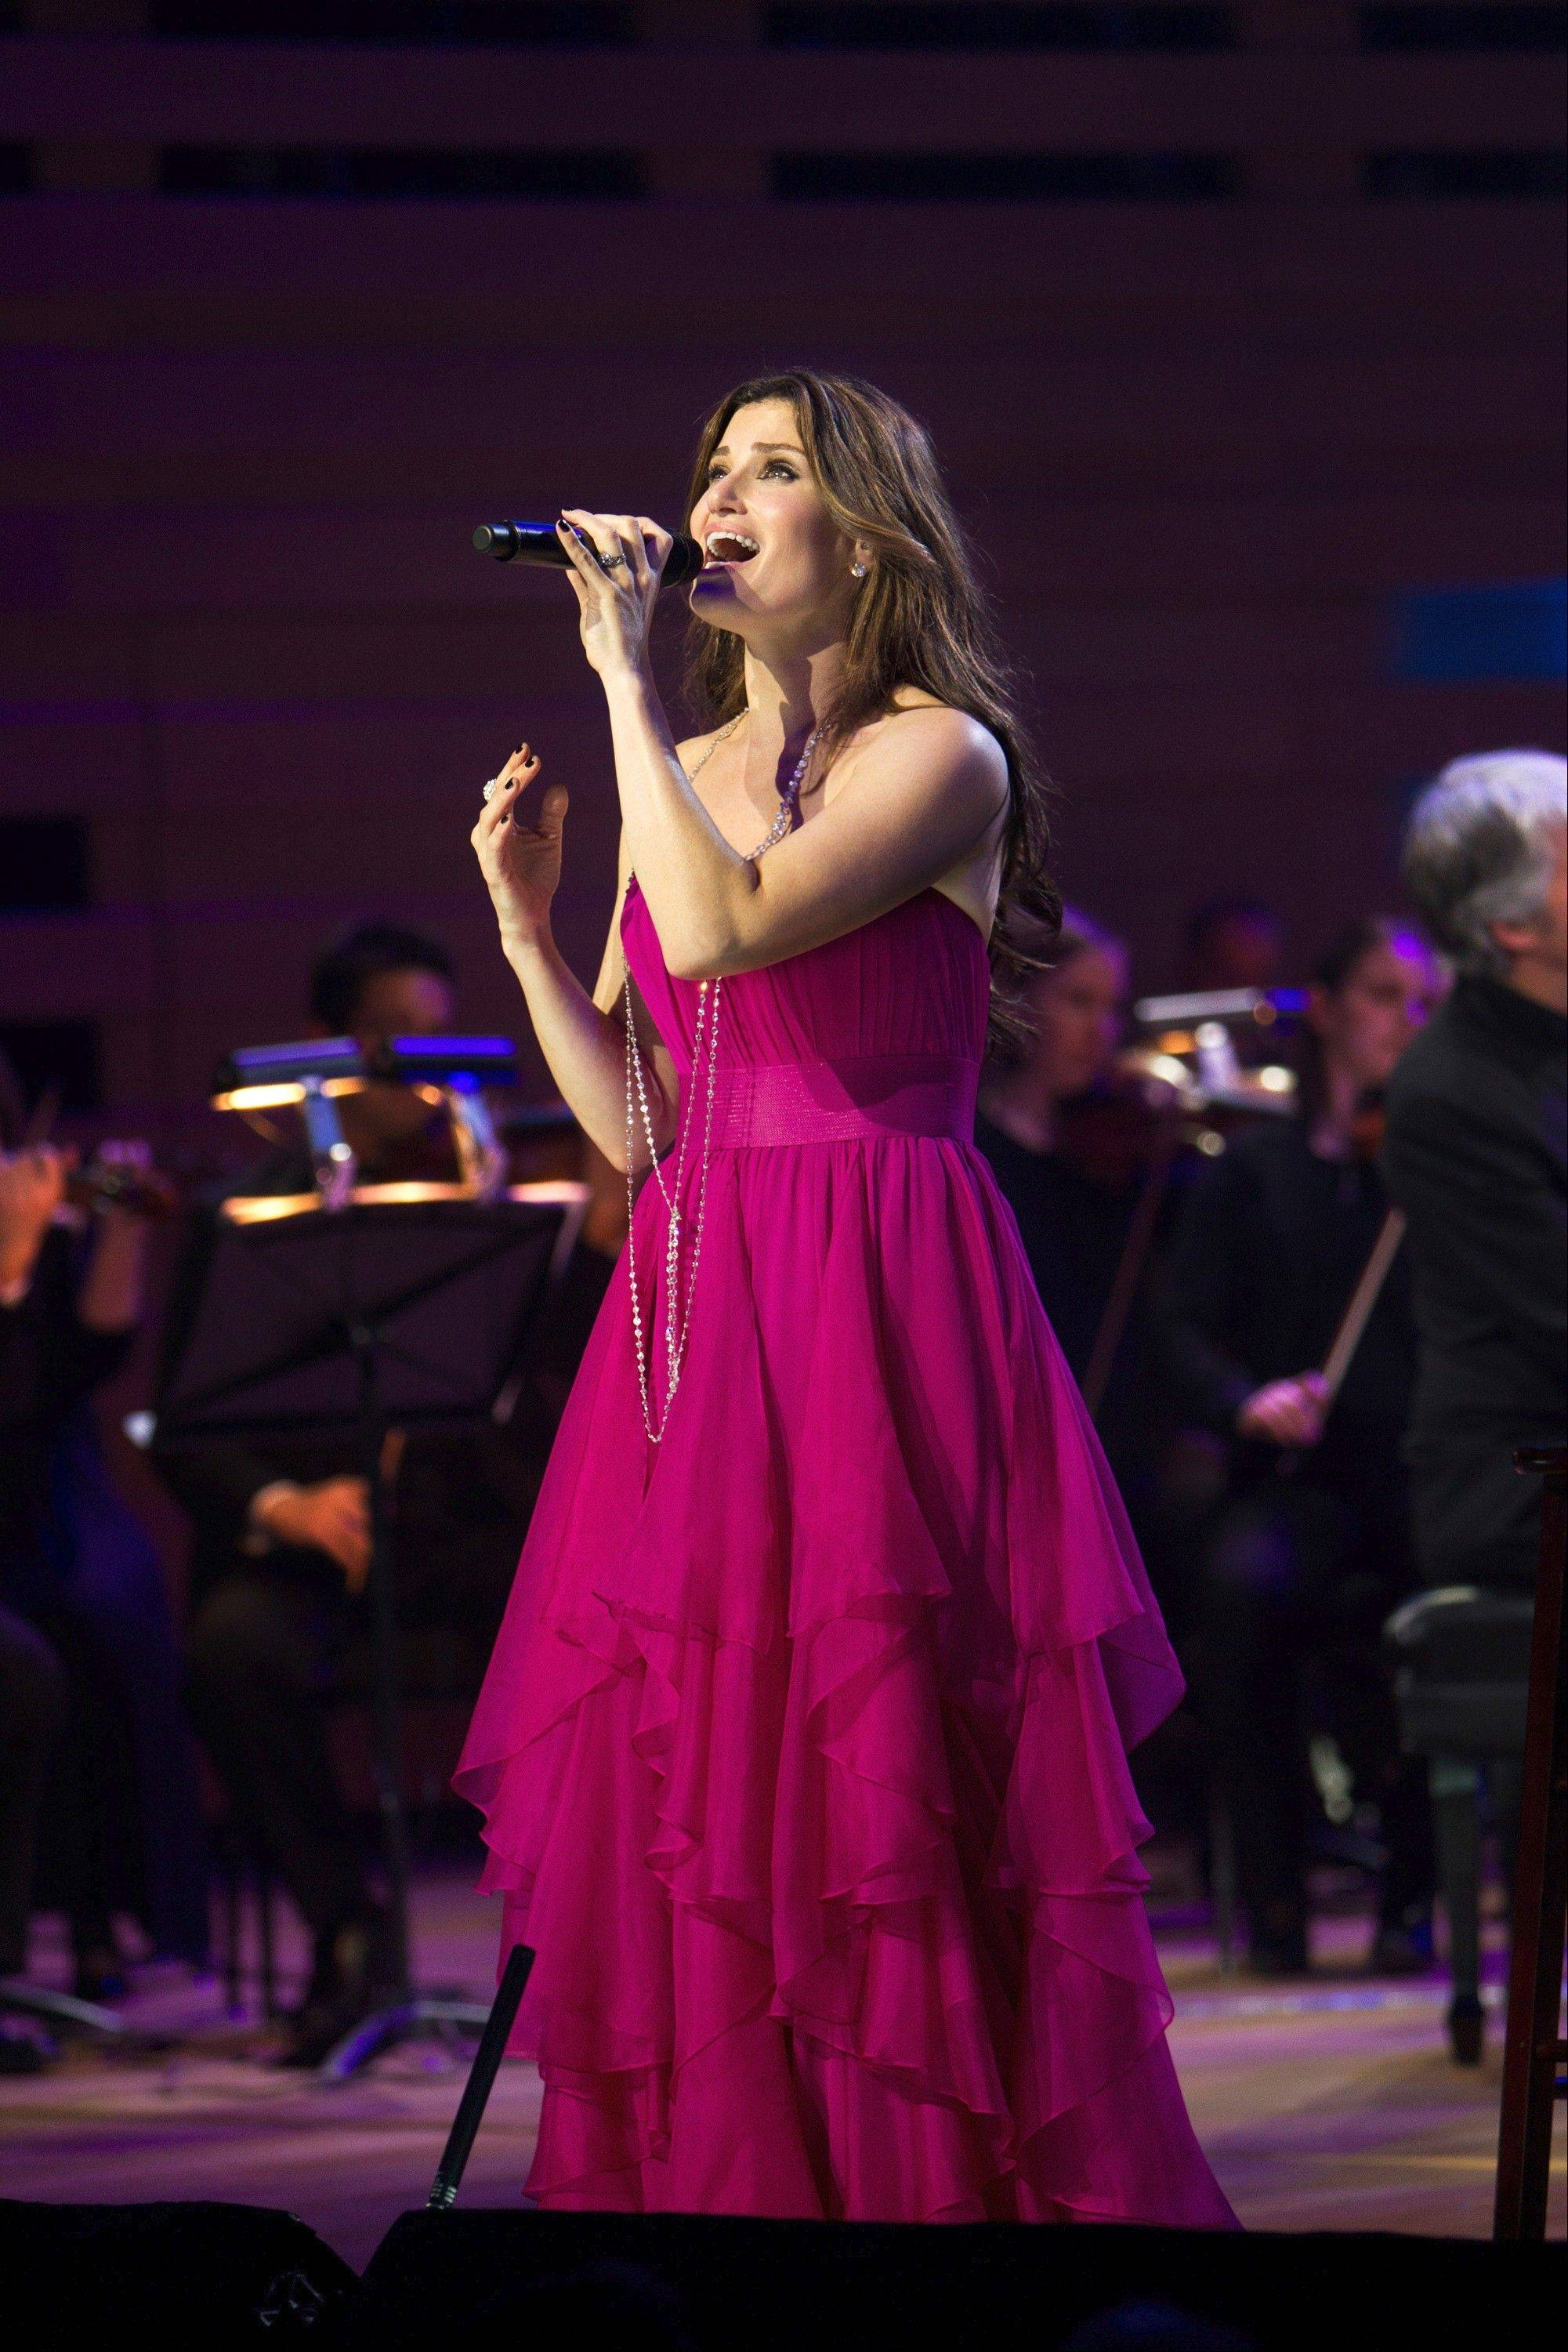 Idina Menzel performs Broadway hits at the new RiverEdge Park in Aurora.